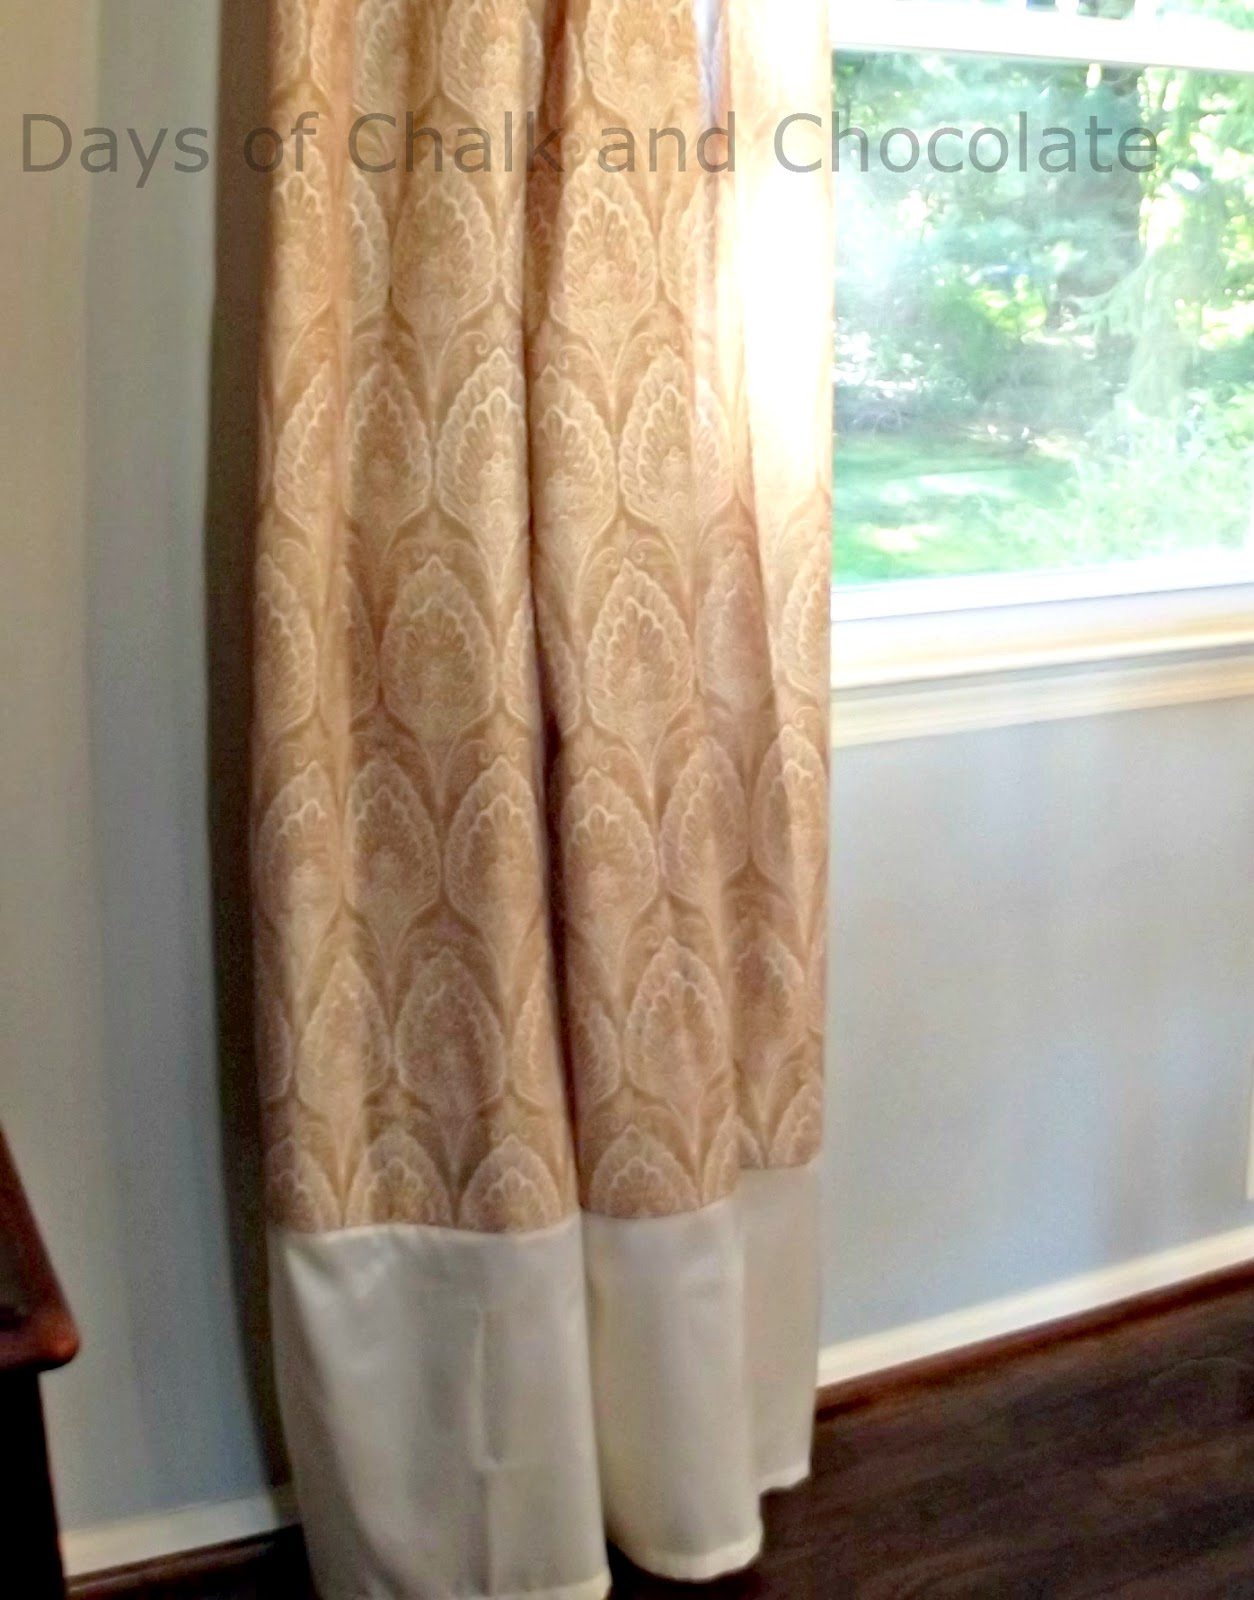 Days of Chalk and Chocolate: Making Drapes from Shower Curtains